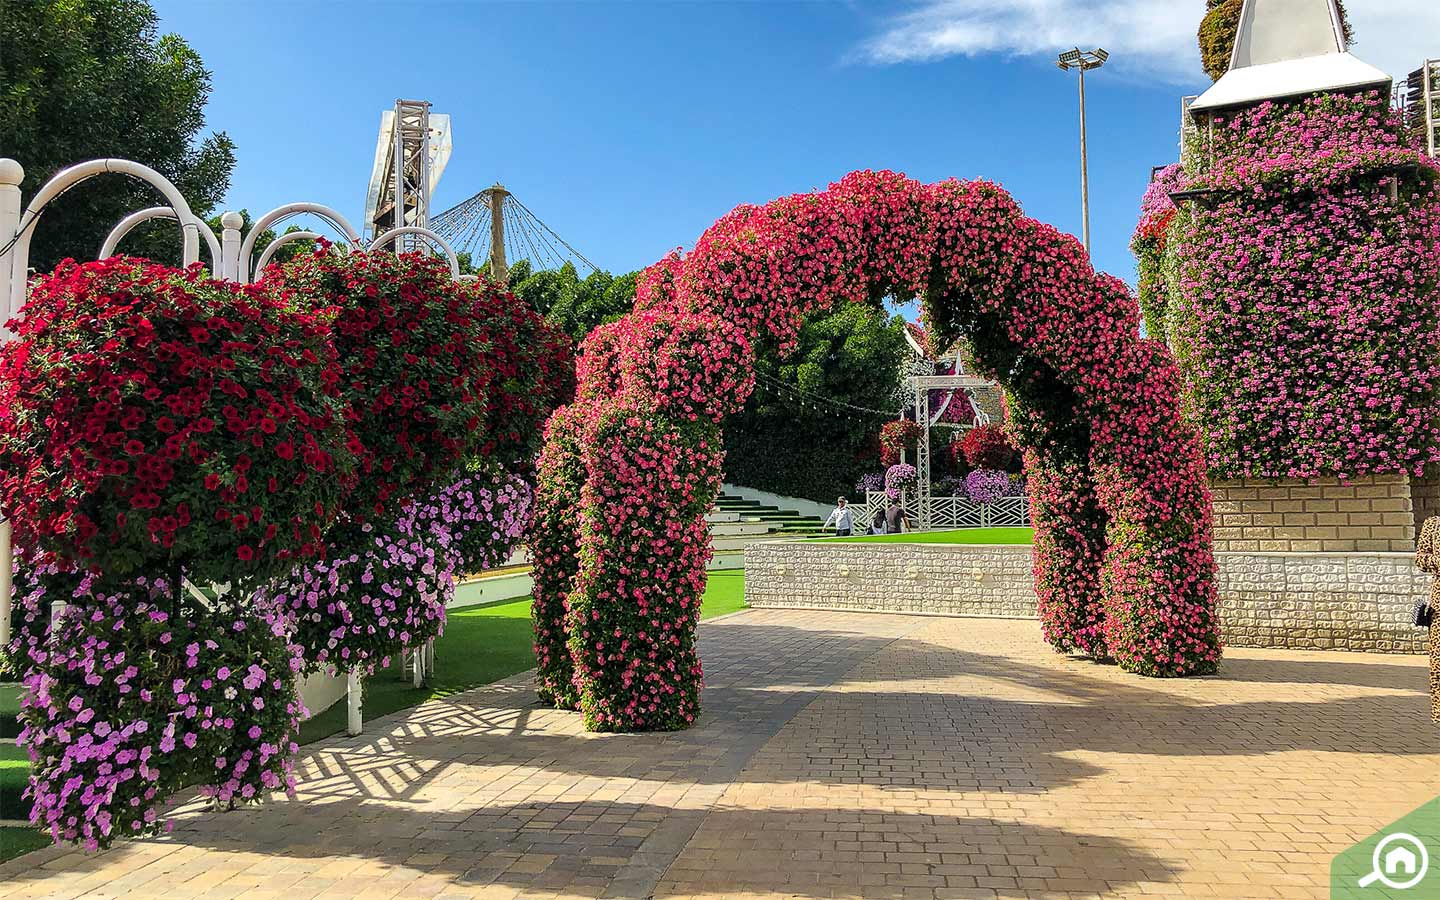 floral attraction at Miracle Garden